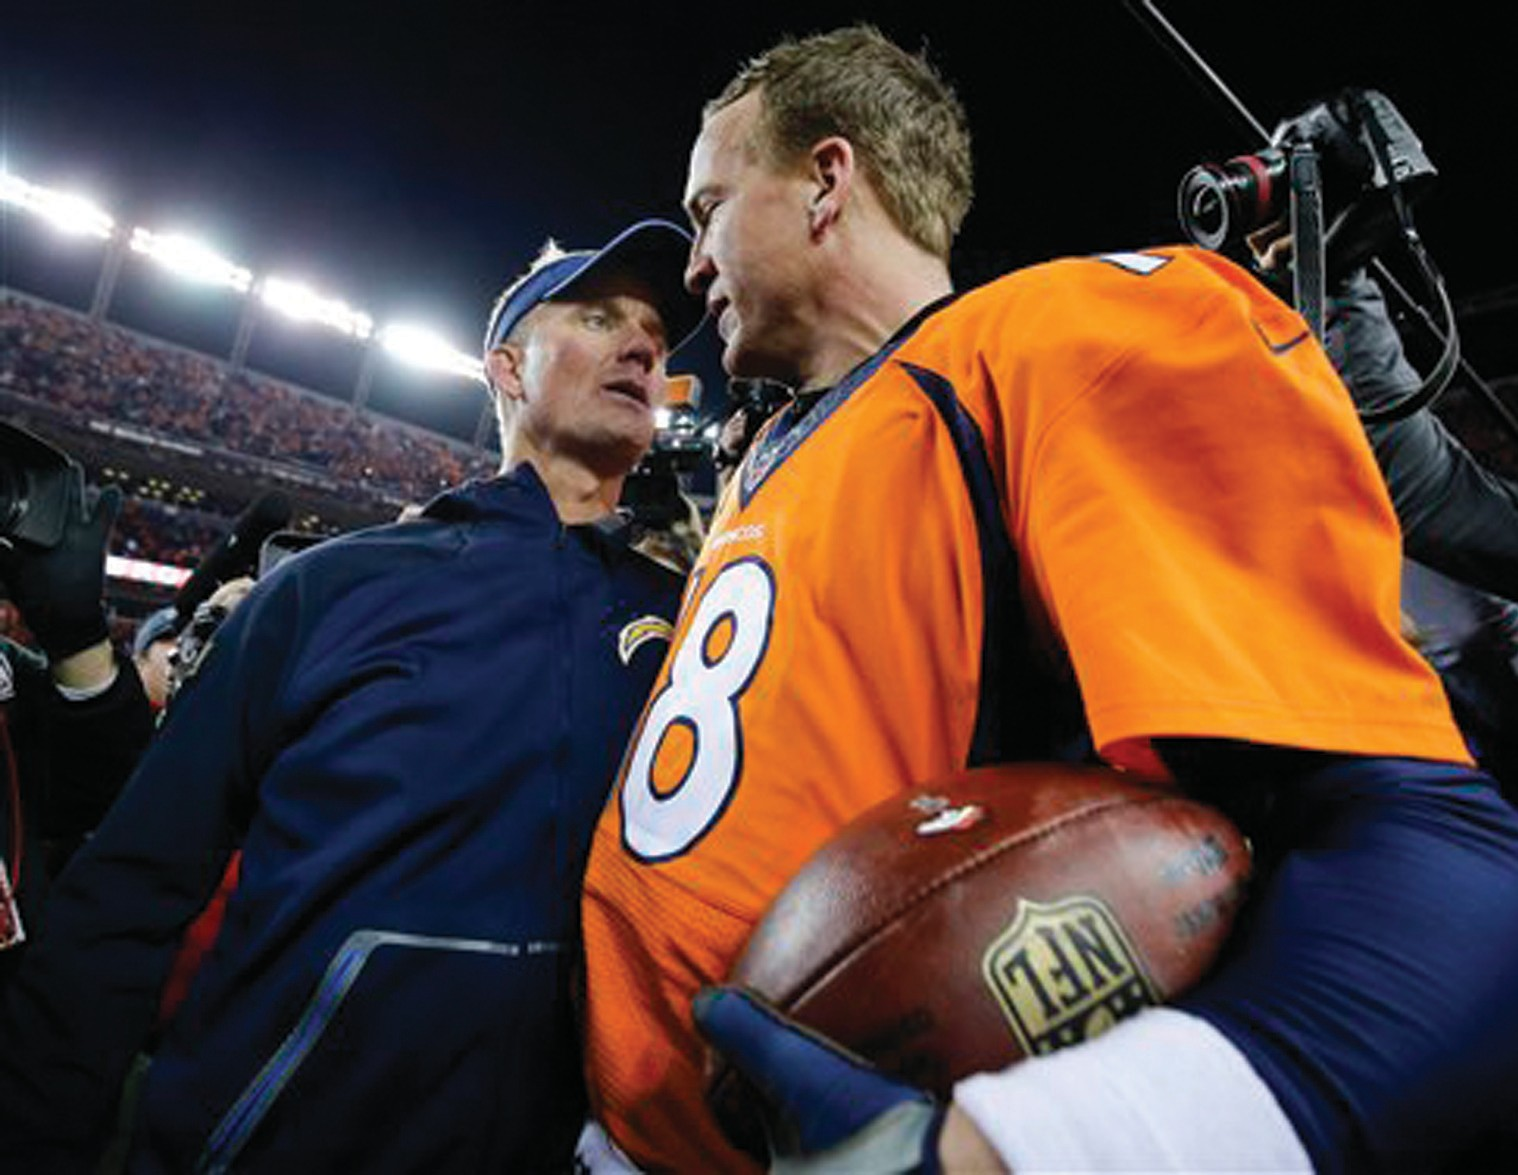 Denver Broncos quarterback Peyton Manning, right, San Diego Chargers head coach Mike McCoy after their win on Sunday in Denver.